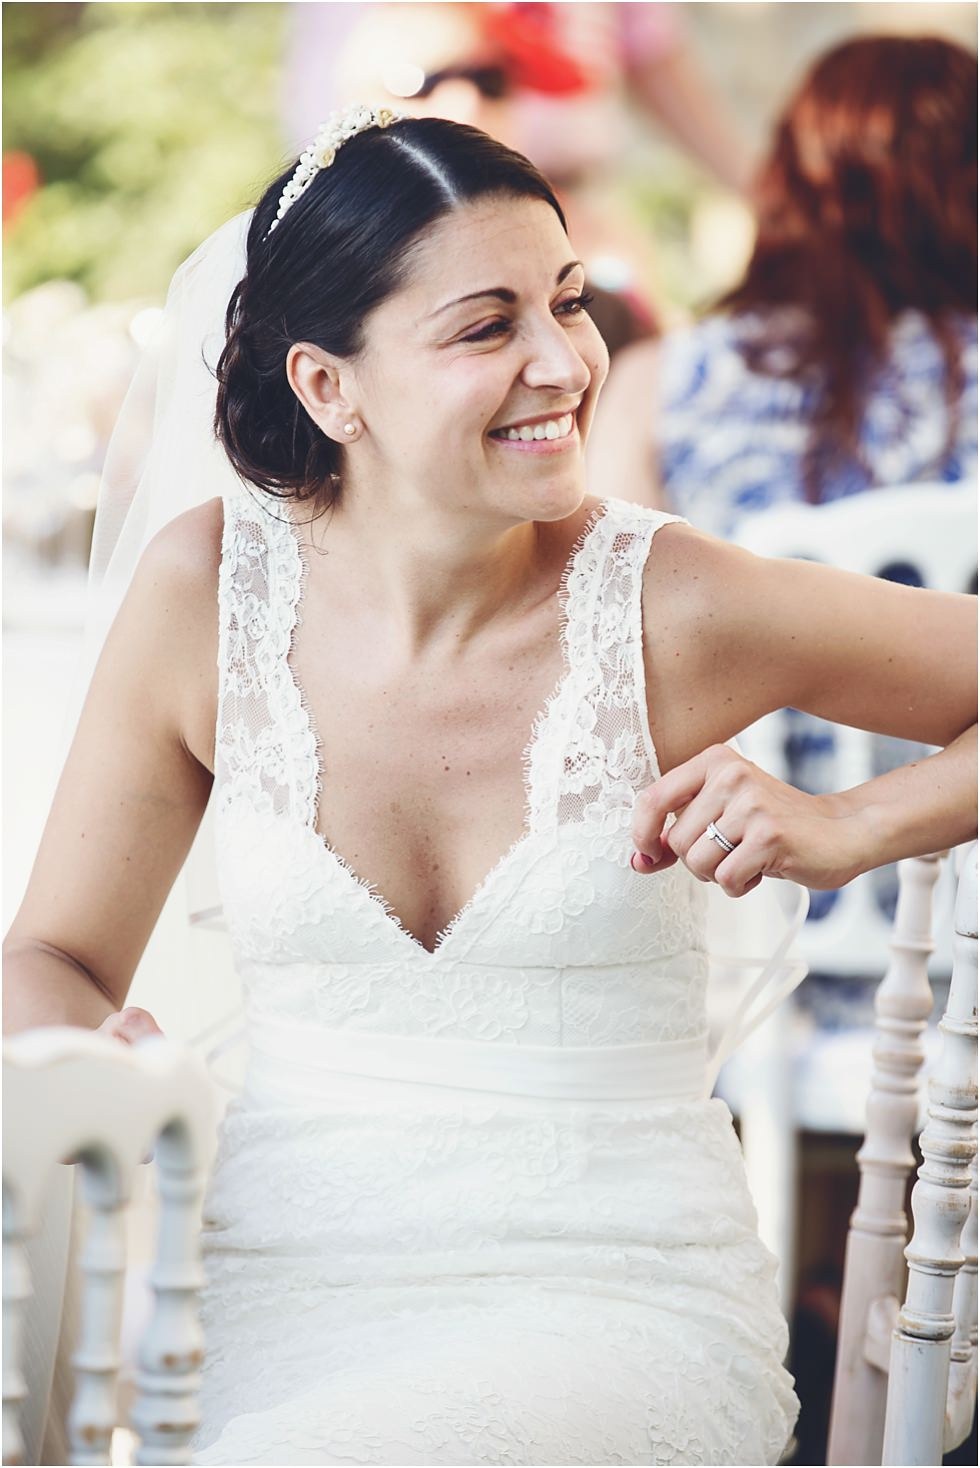 Cristina Rossi Photography Destination Wedding Italy_1313